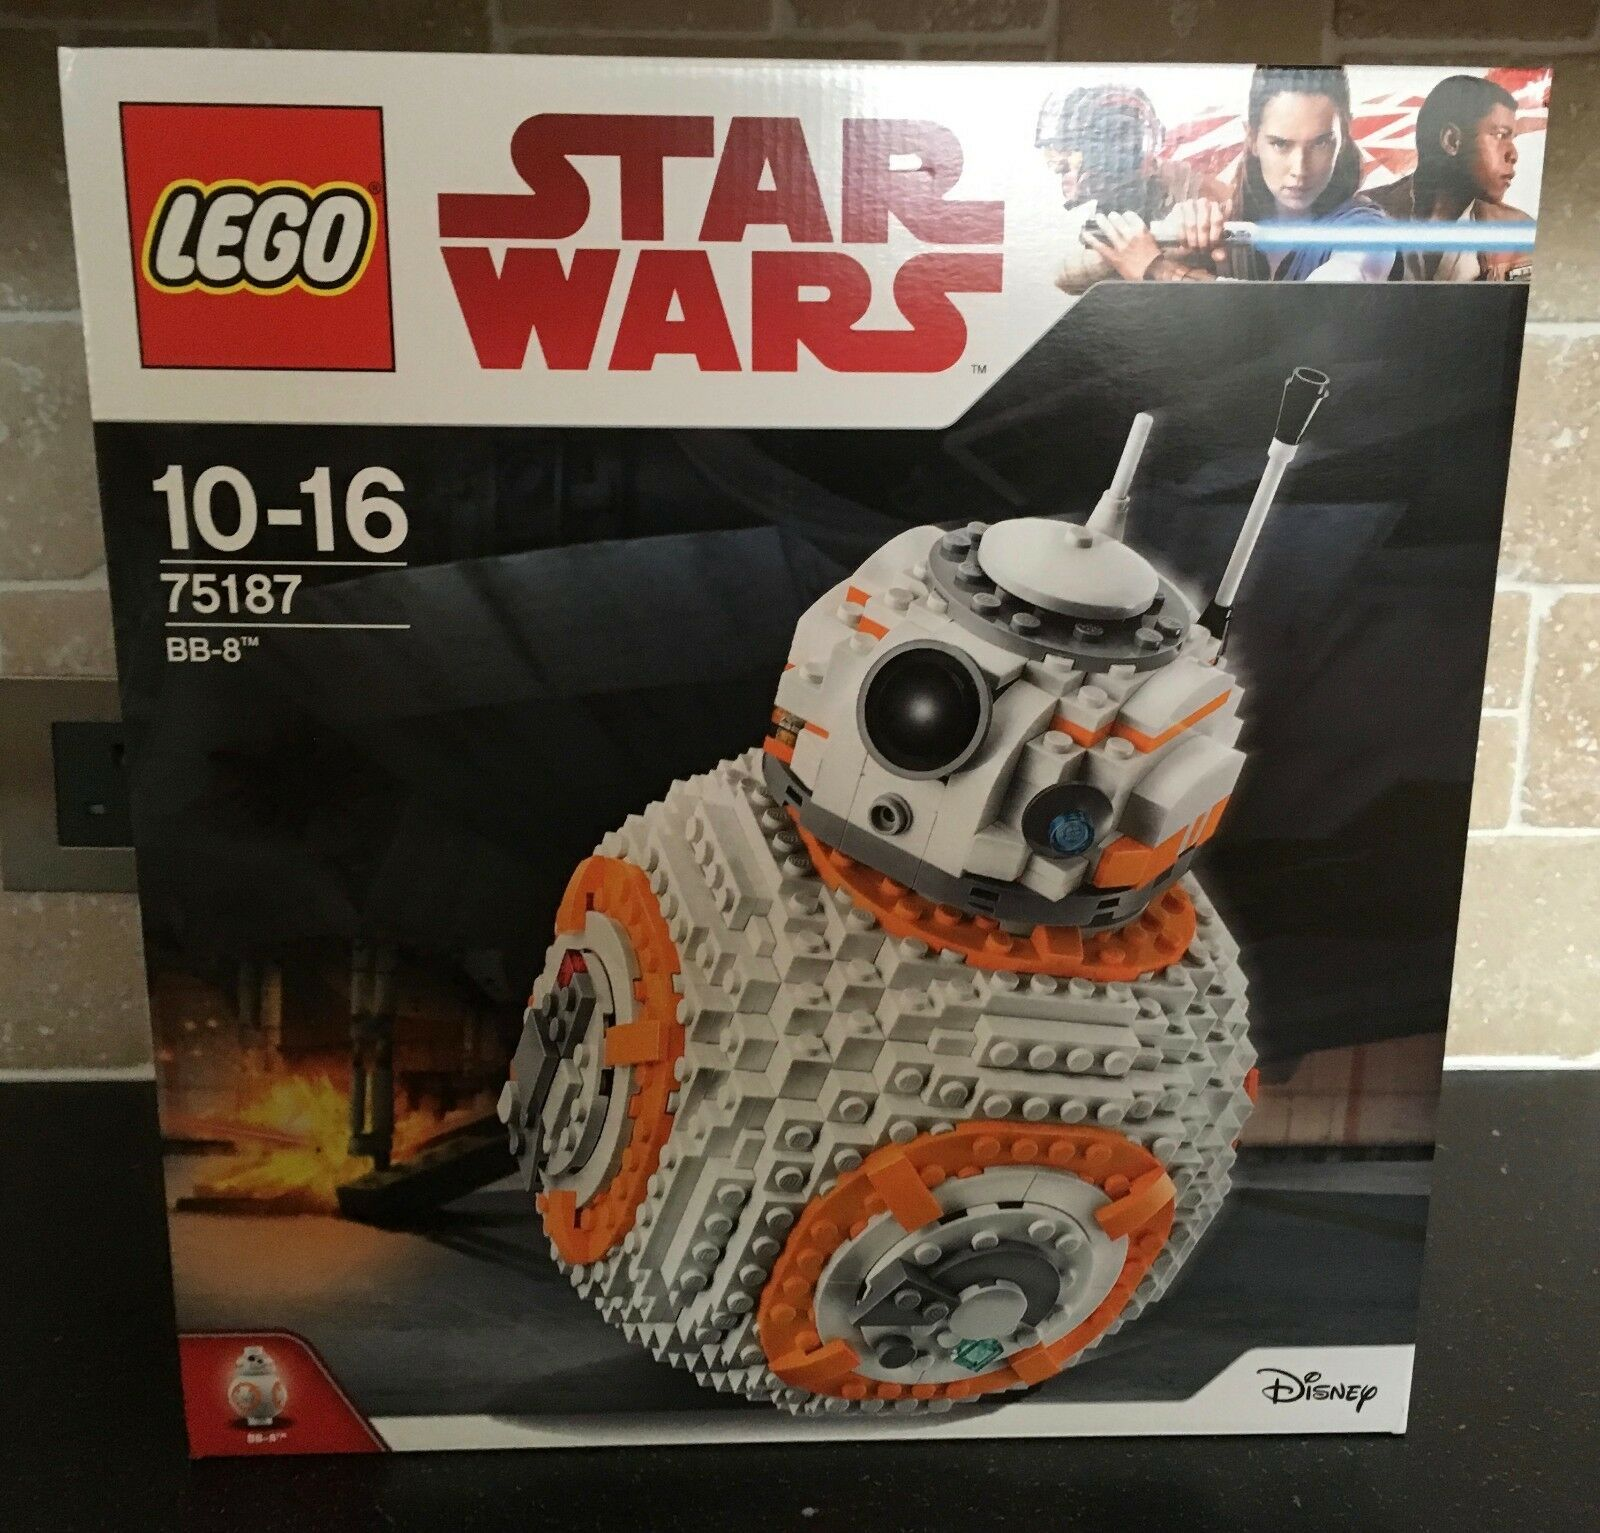 LEGO STAR WARS - 75187 BB-8 Brand New In Sealed Box